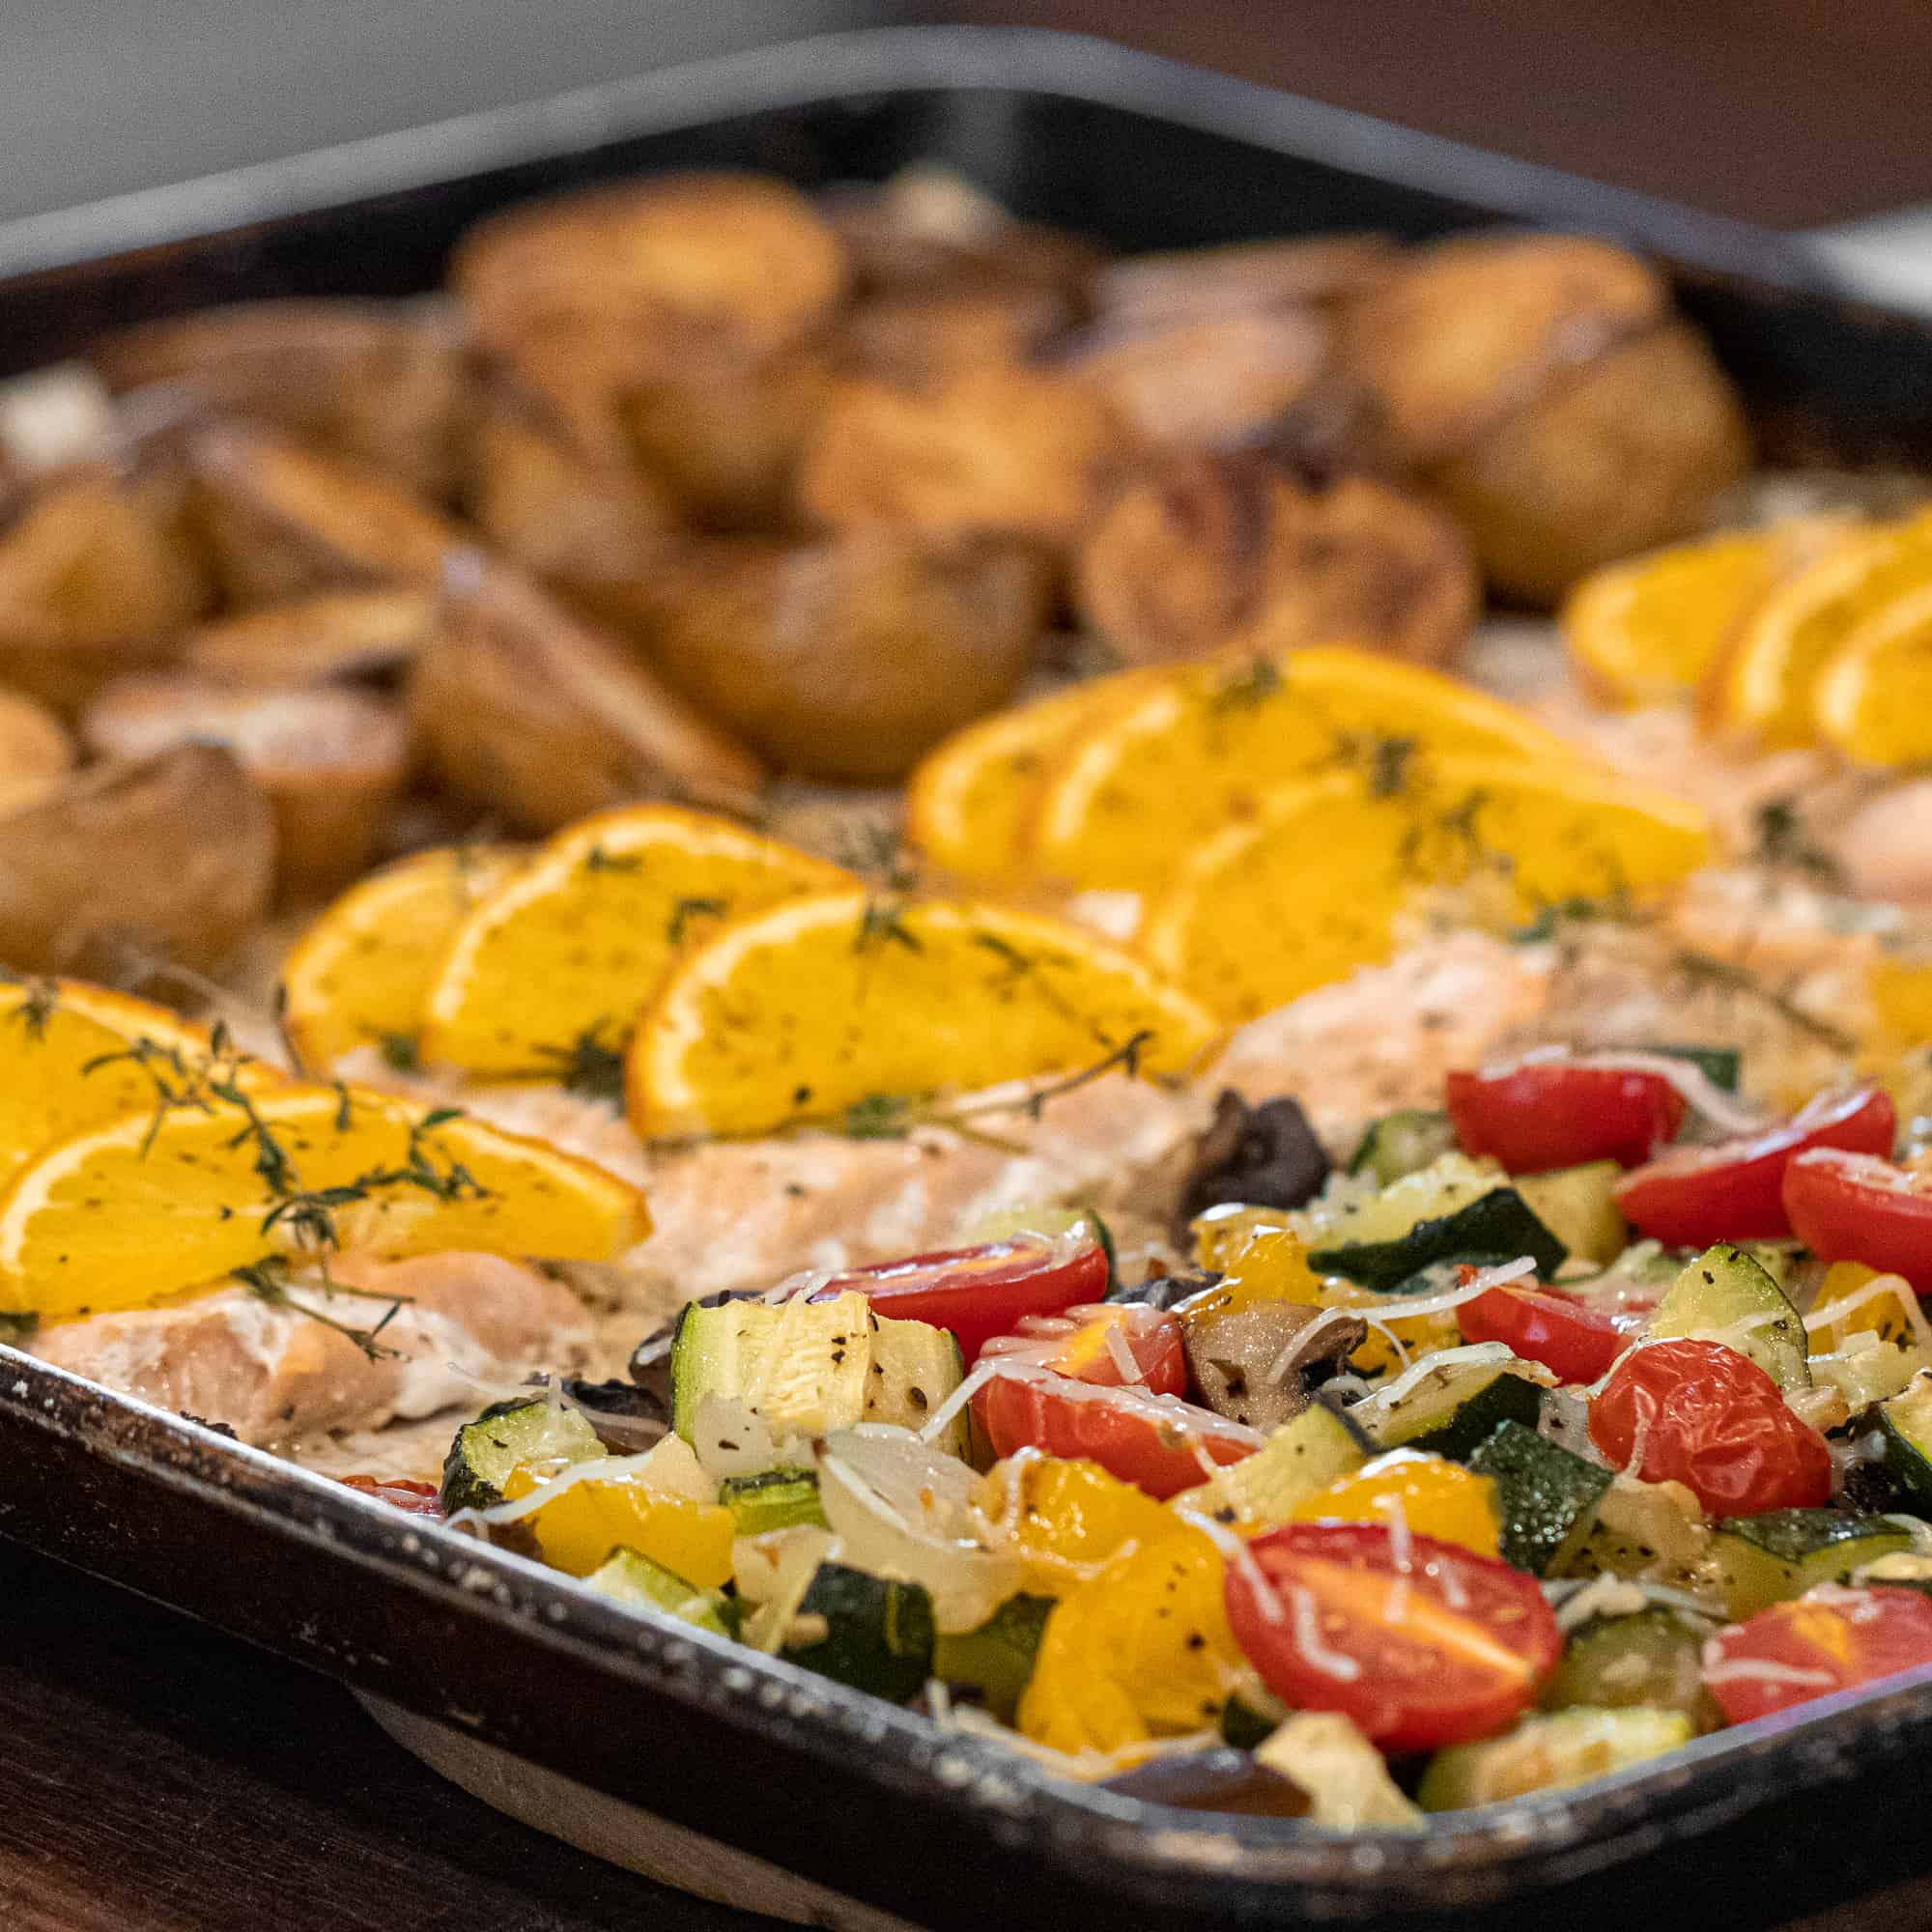 Sheet Pan Salmon With Potatoes And Mixed Vegetables